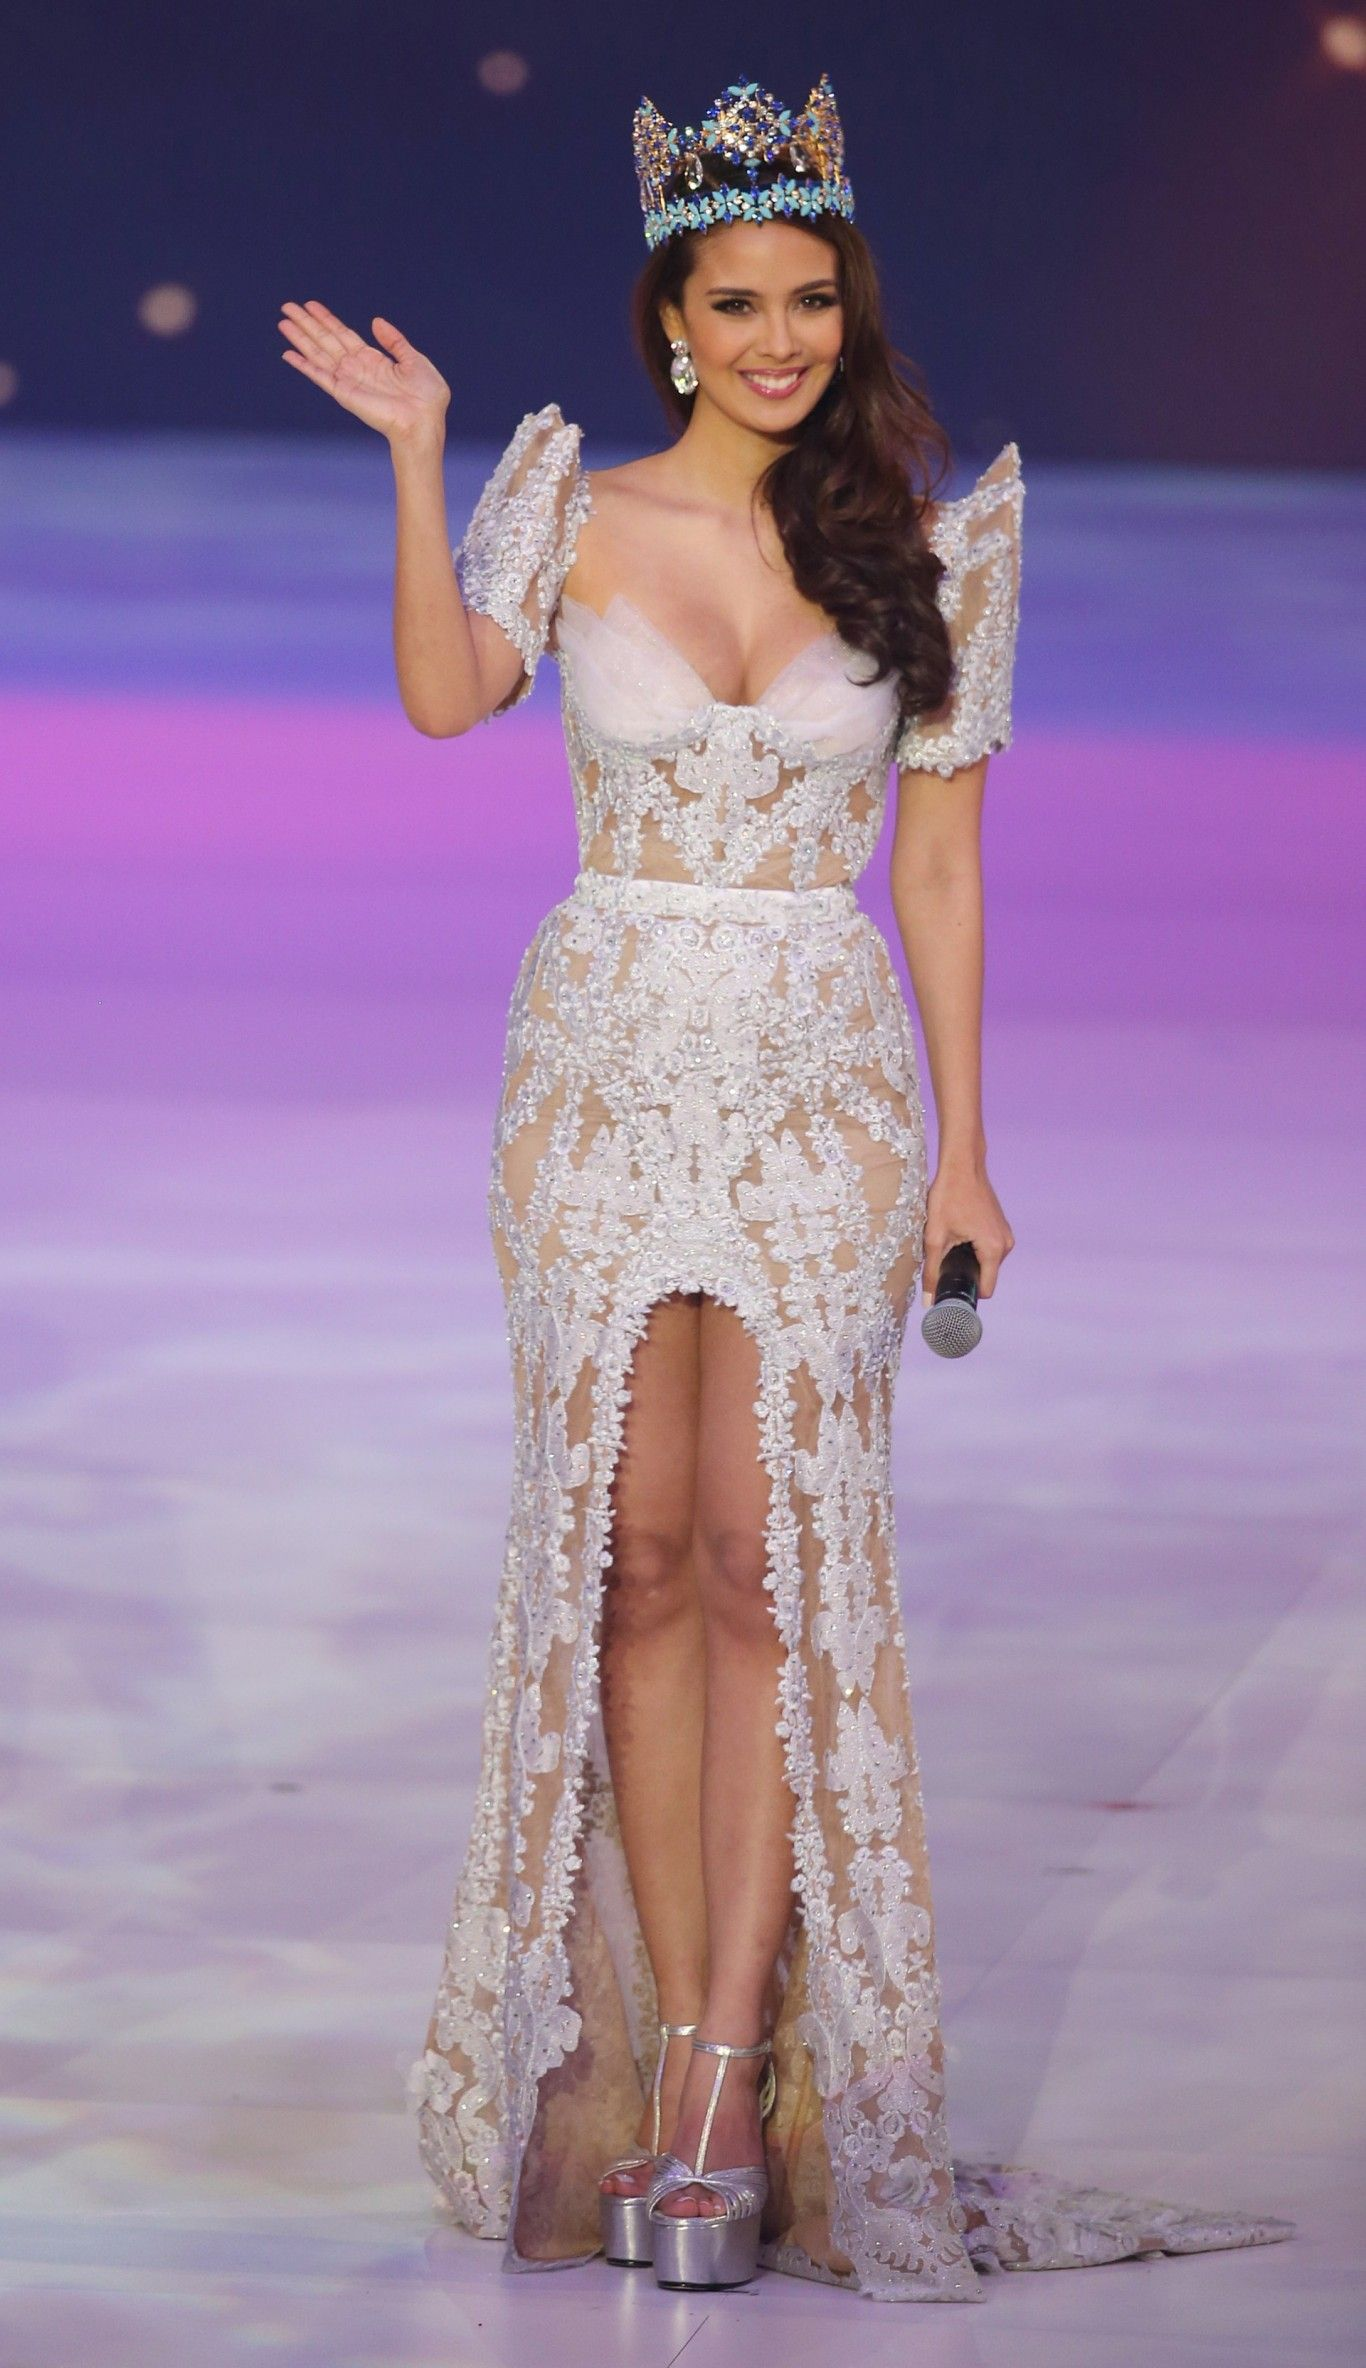 Filipiniana Gown - megan young miss world 2014 - Google Search ...